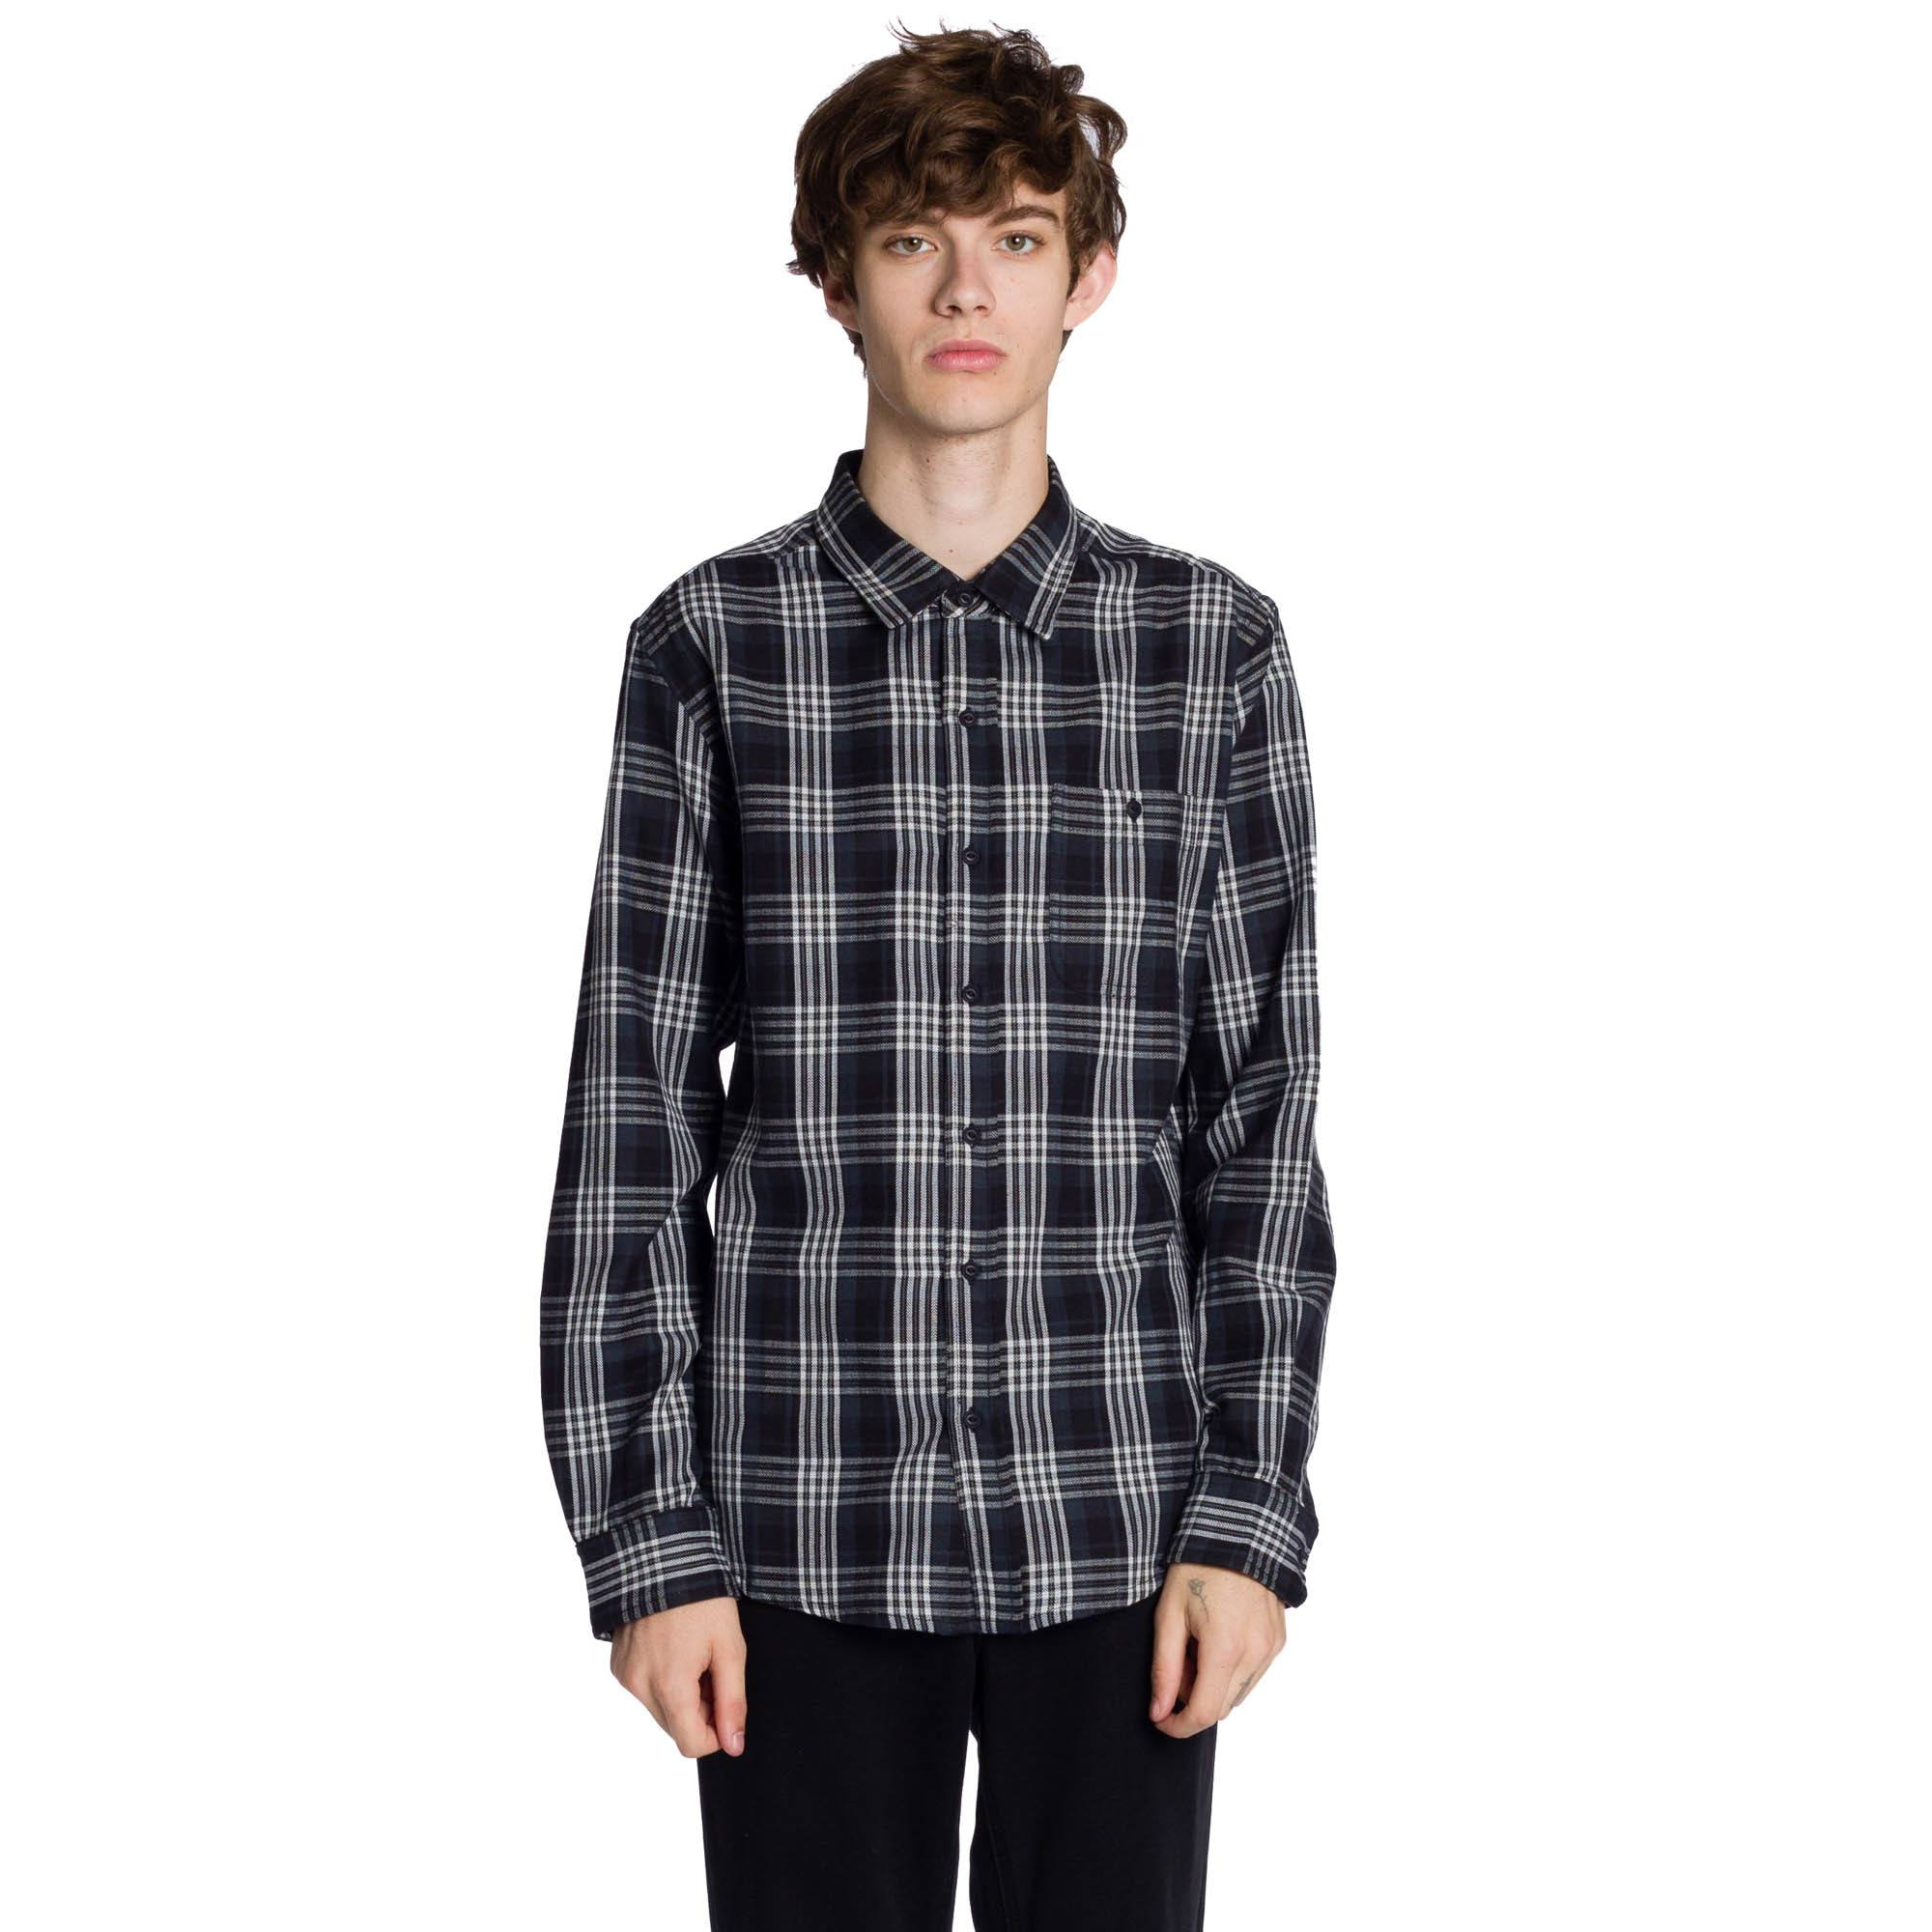 Harris Shirt - Black